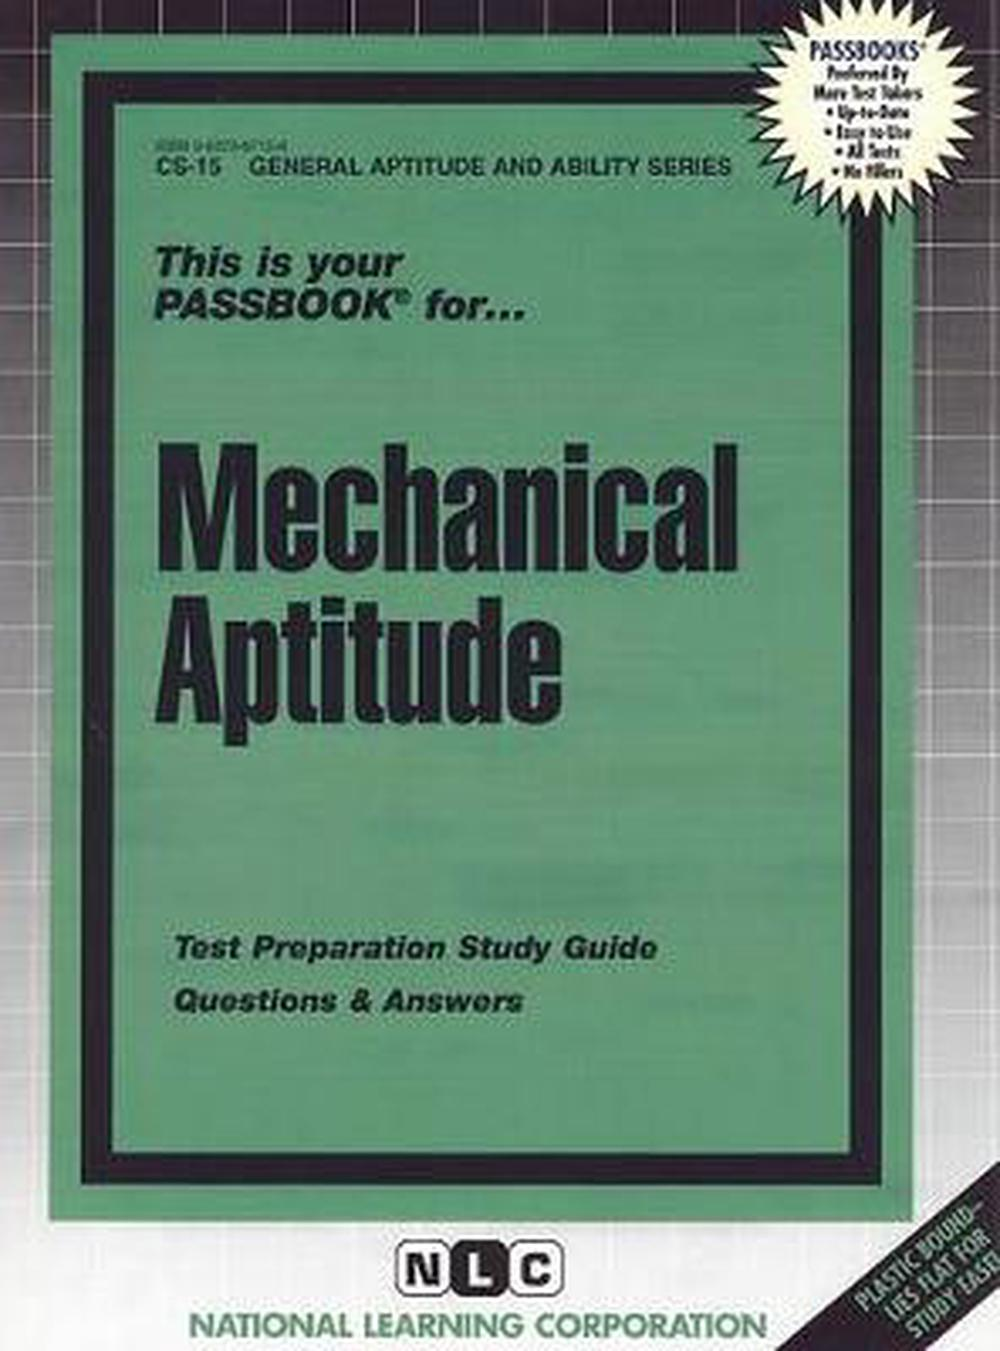 Mechanical Aptitude: Test Preparation Study Guide, Questions & Answers